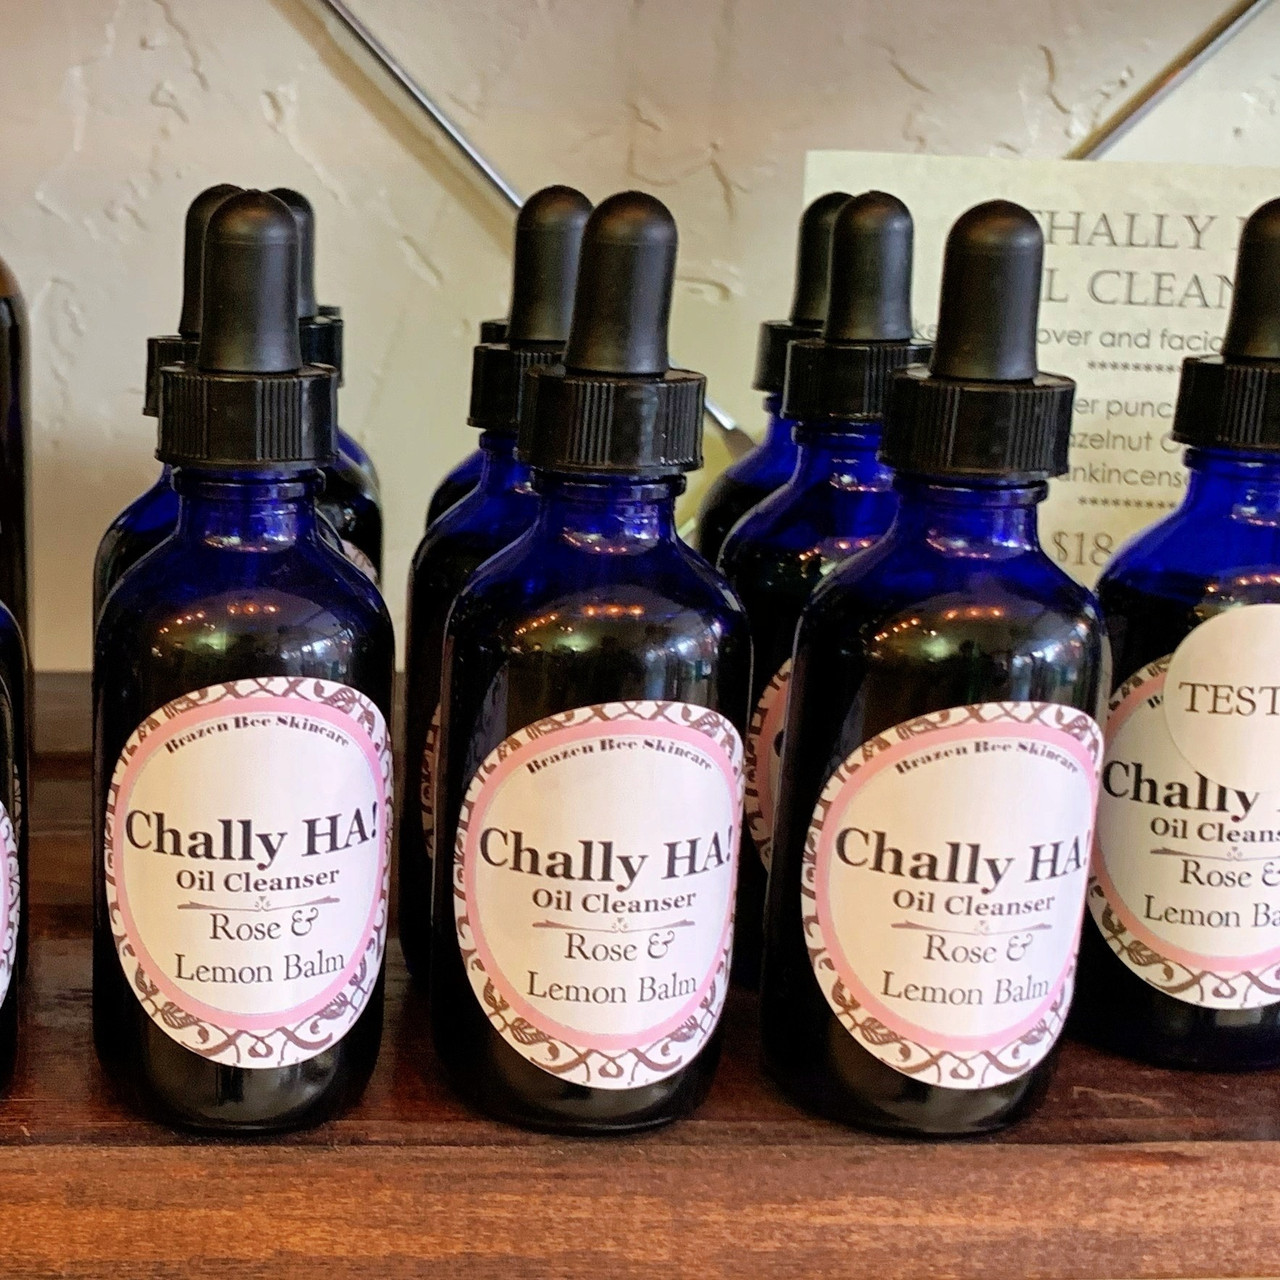 Chally HA! Oil **NEW ROSE & LEMON BALM** |   OIL CLEANSING